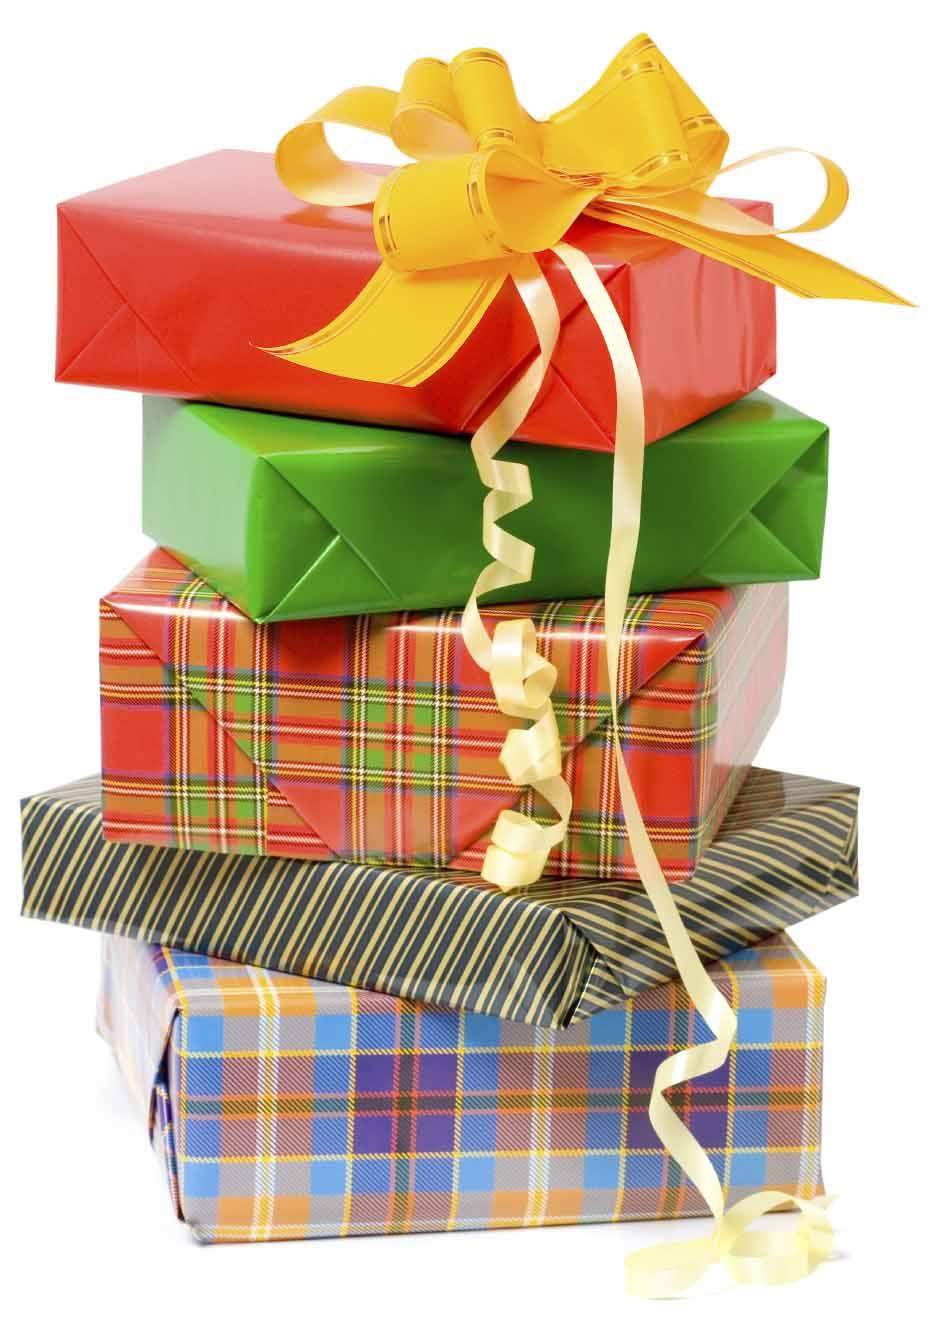 ttp://www.cocoabeachchamber.com/images/userpics/Piles%20of%20Presents.jpg